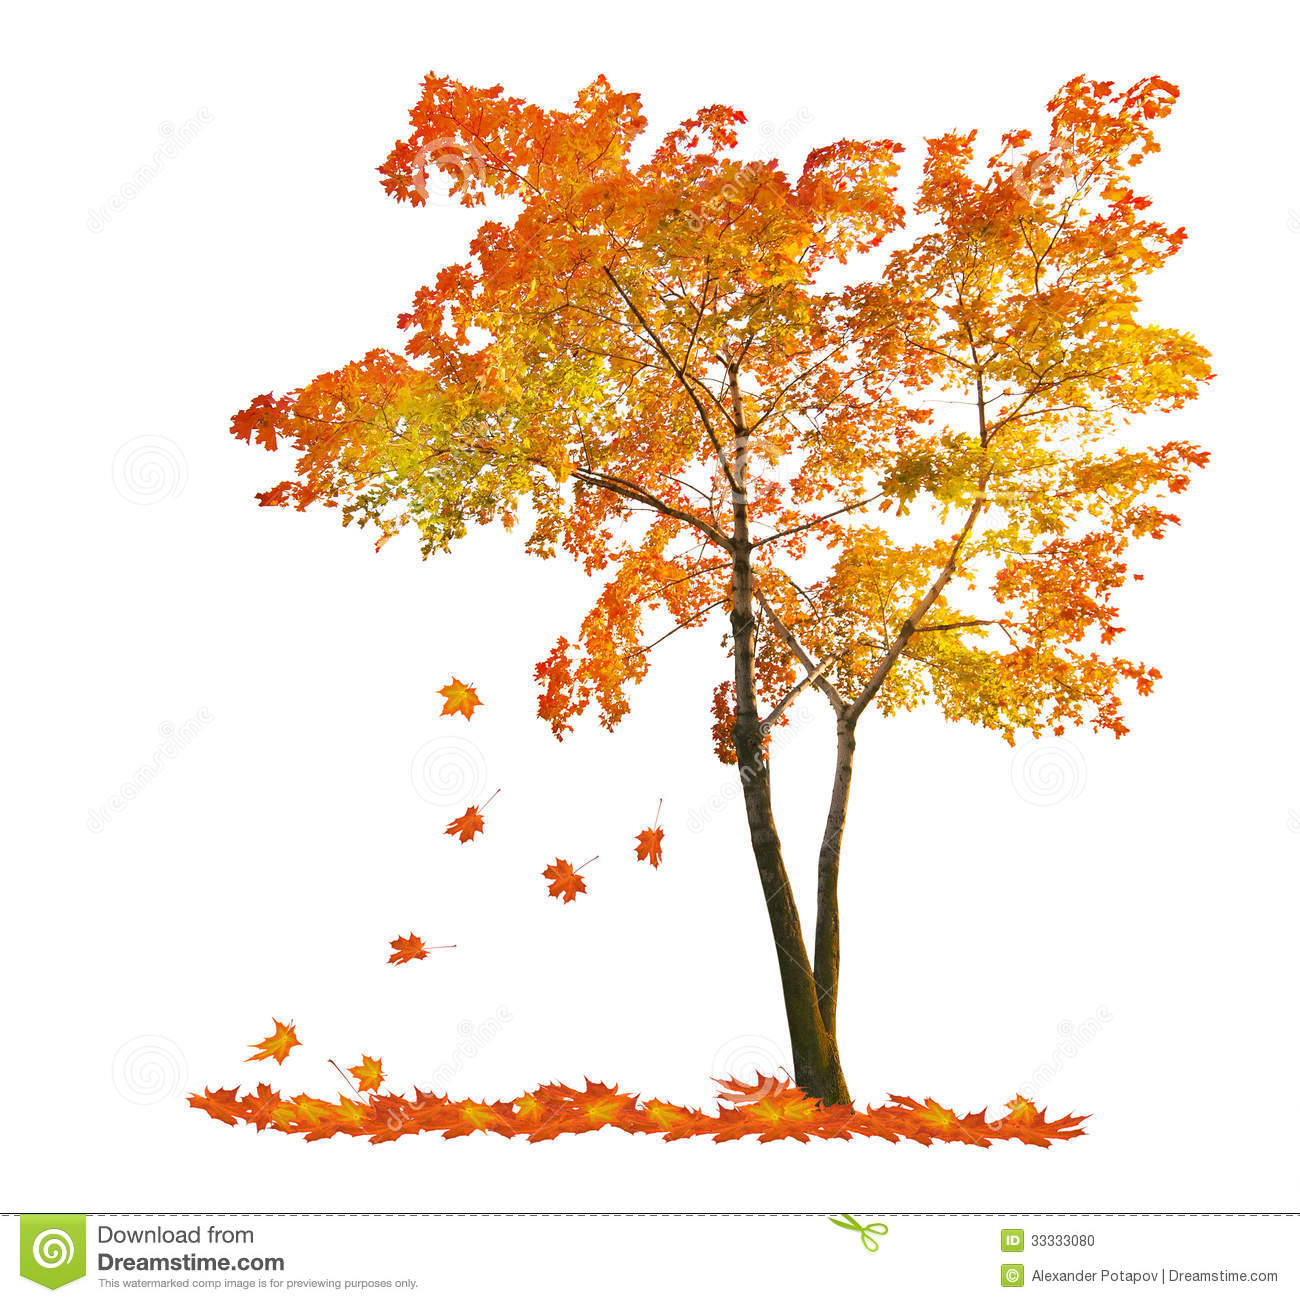 Leaves Falling Off Trees Clipart.